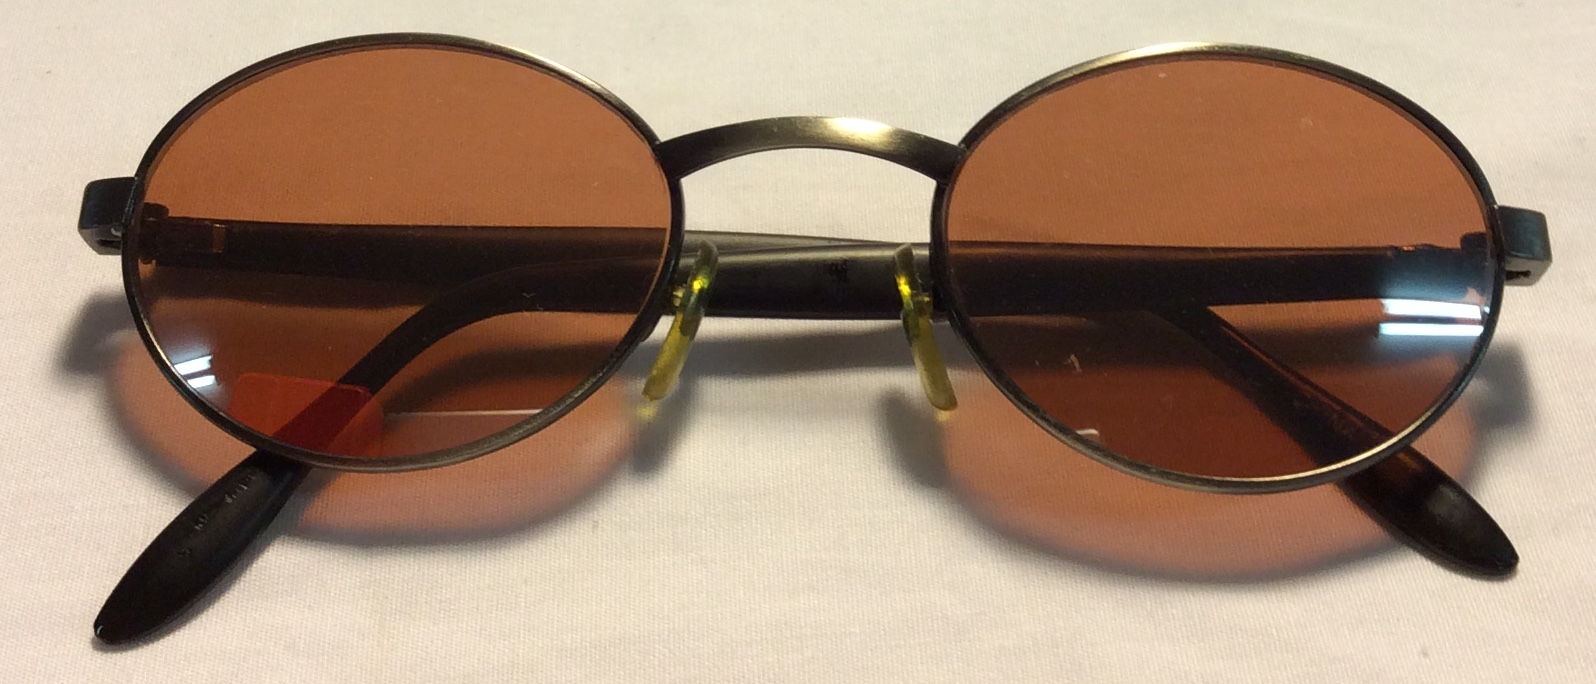 Black plastic side frames, silver